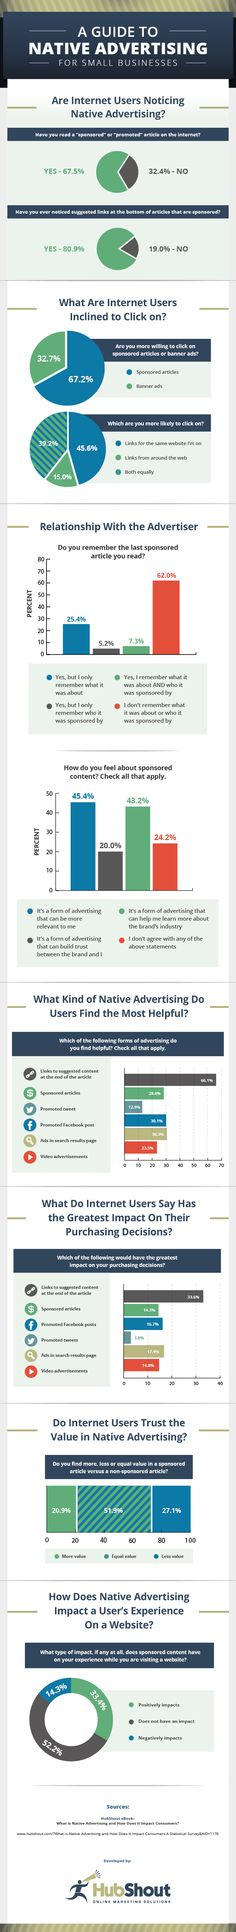 Small Business Guide to Native Advertising: http://hubshout.com/?Native-Advertising-Statistics-You-Should-Know&AID=1206